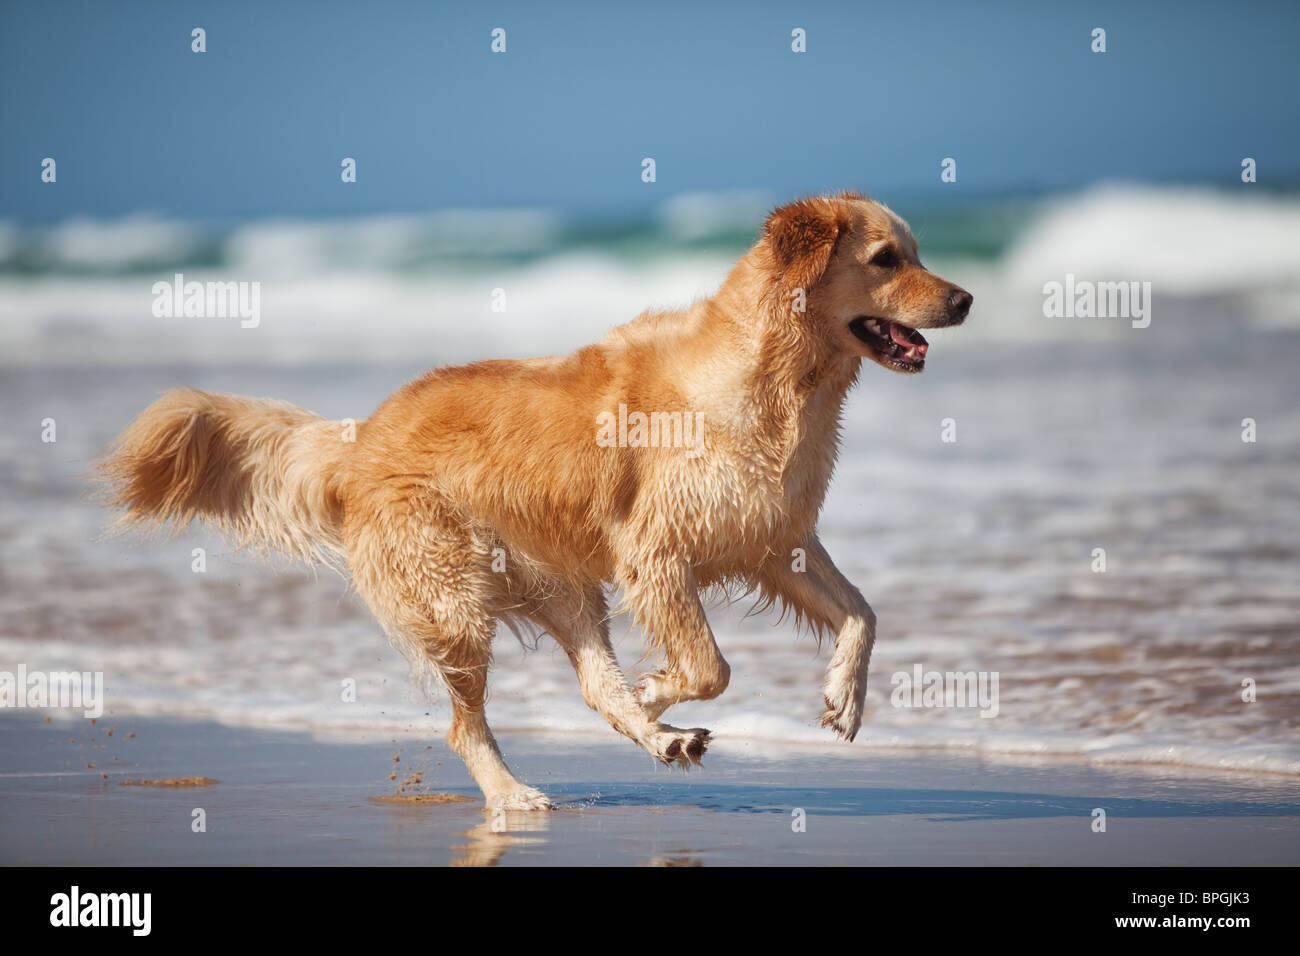 Focused young golden retriever running on the beach - Stock Image